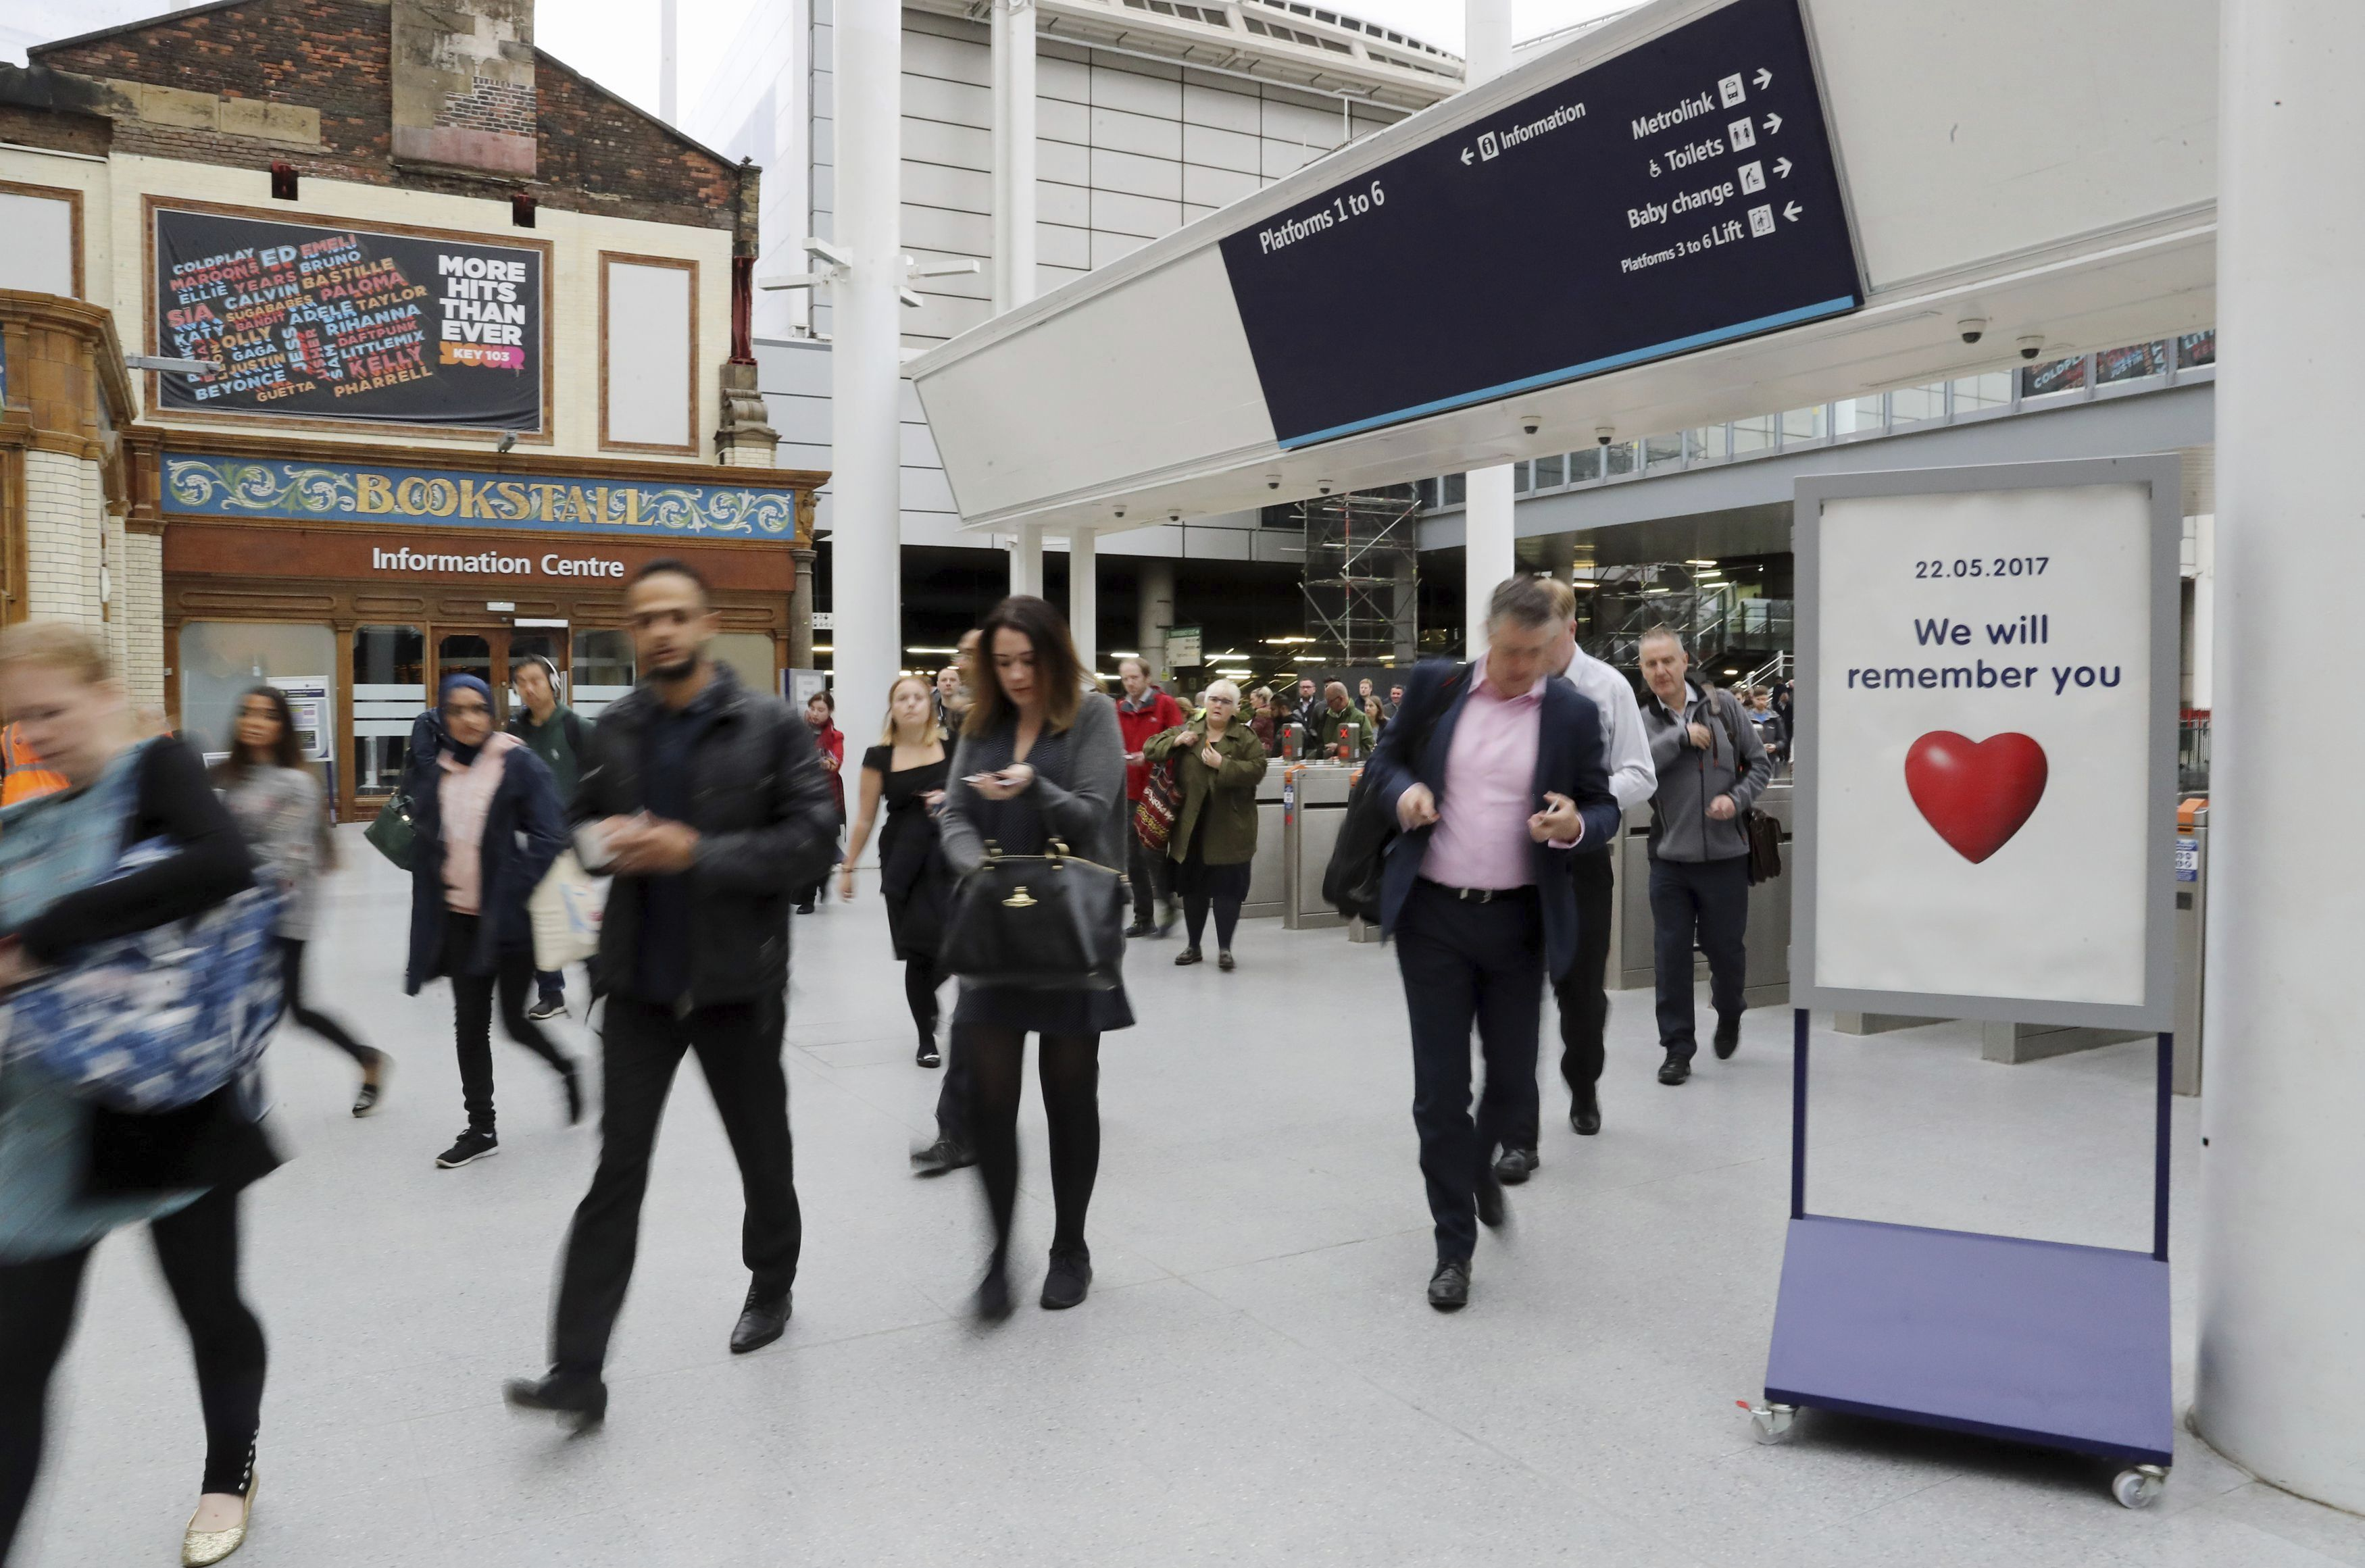 Commuters pass through Manchester Victoria railway station, England, on Tuesday, which has reopened for the first time since the terror attack on the adjacent Manchester Arena. The station closed was closed following the explosion last week that killed more than 20 people. AP WIREPHOTO